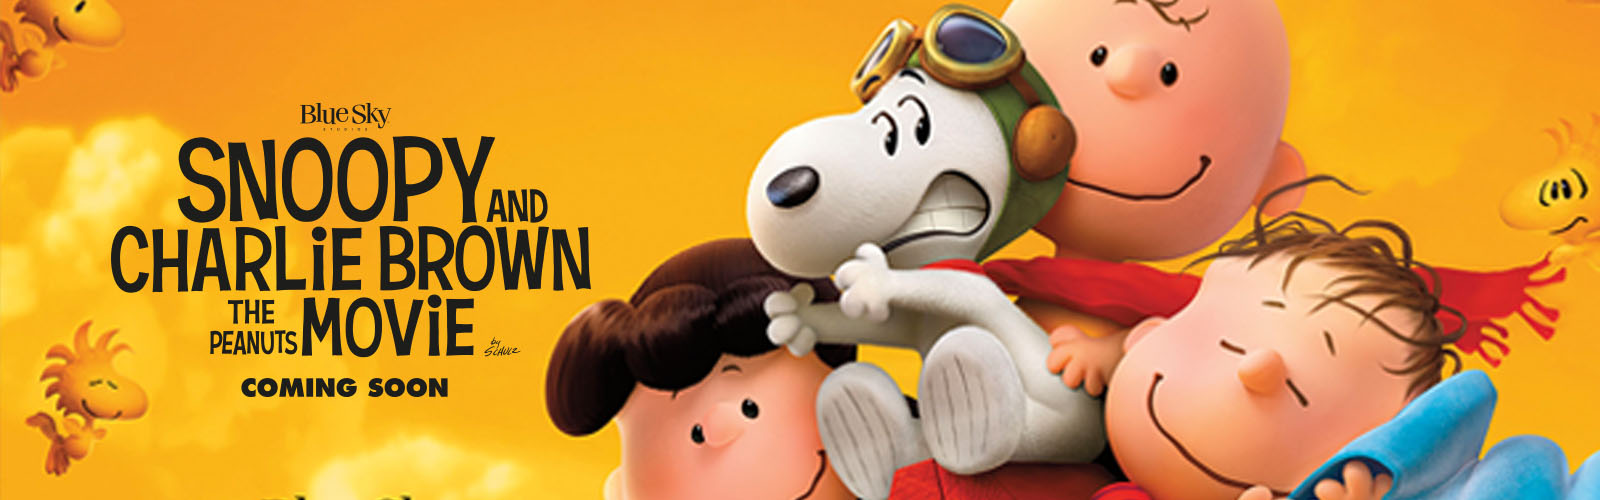 Snoopy and Charlie Brown Movie